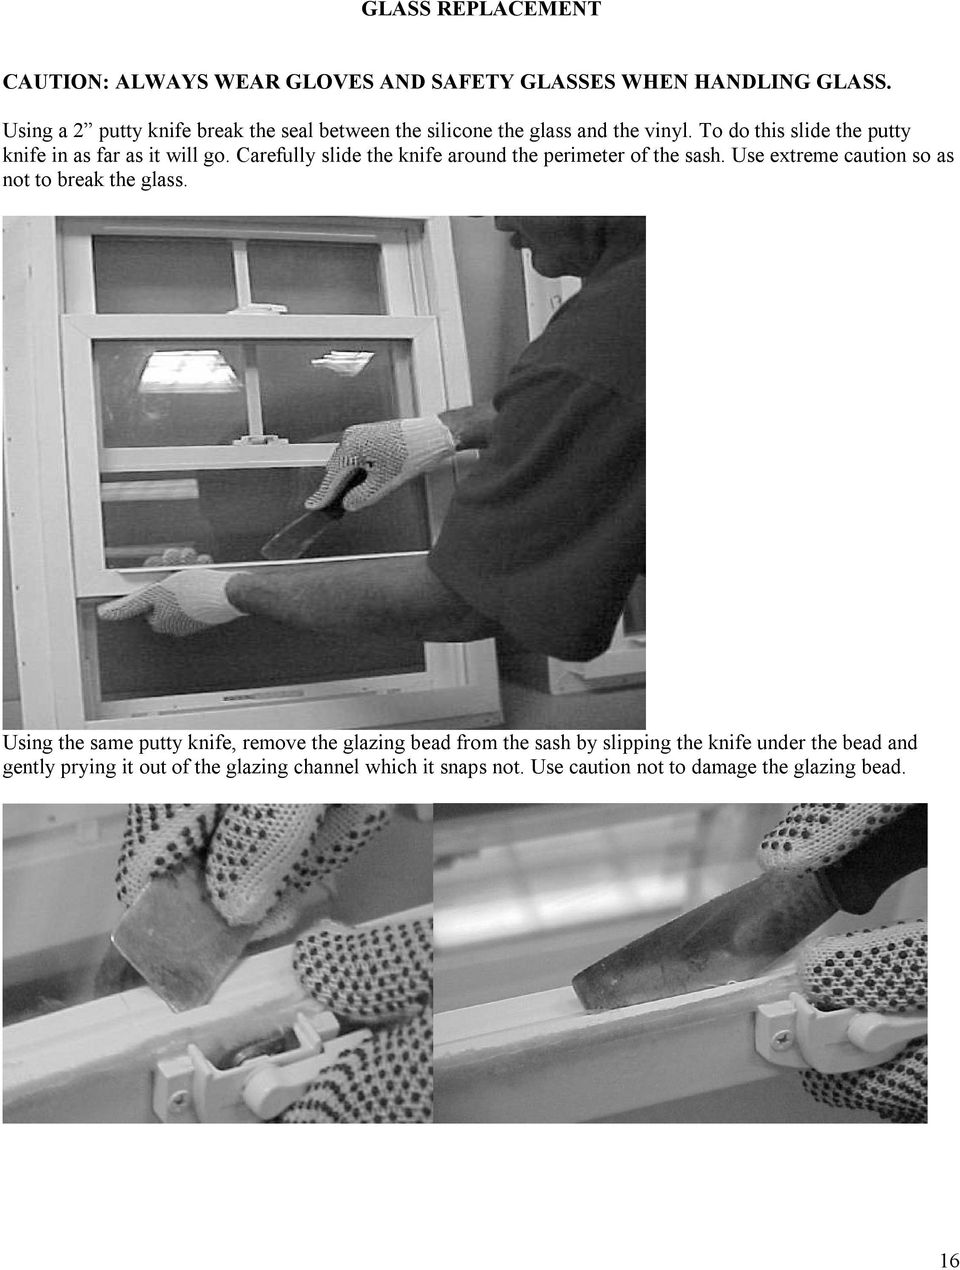 To do this slide the putty knife in as far as it will go. Carefully slide the knife around the perimeter of the sash.